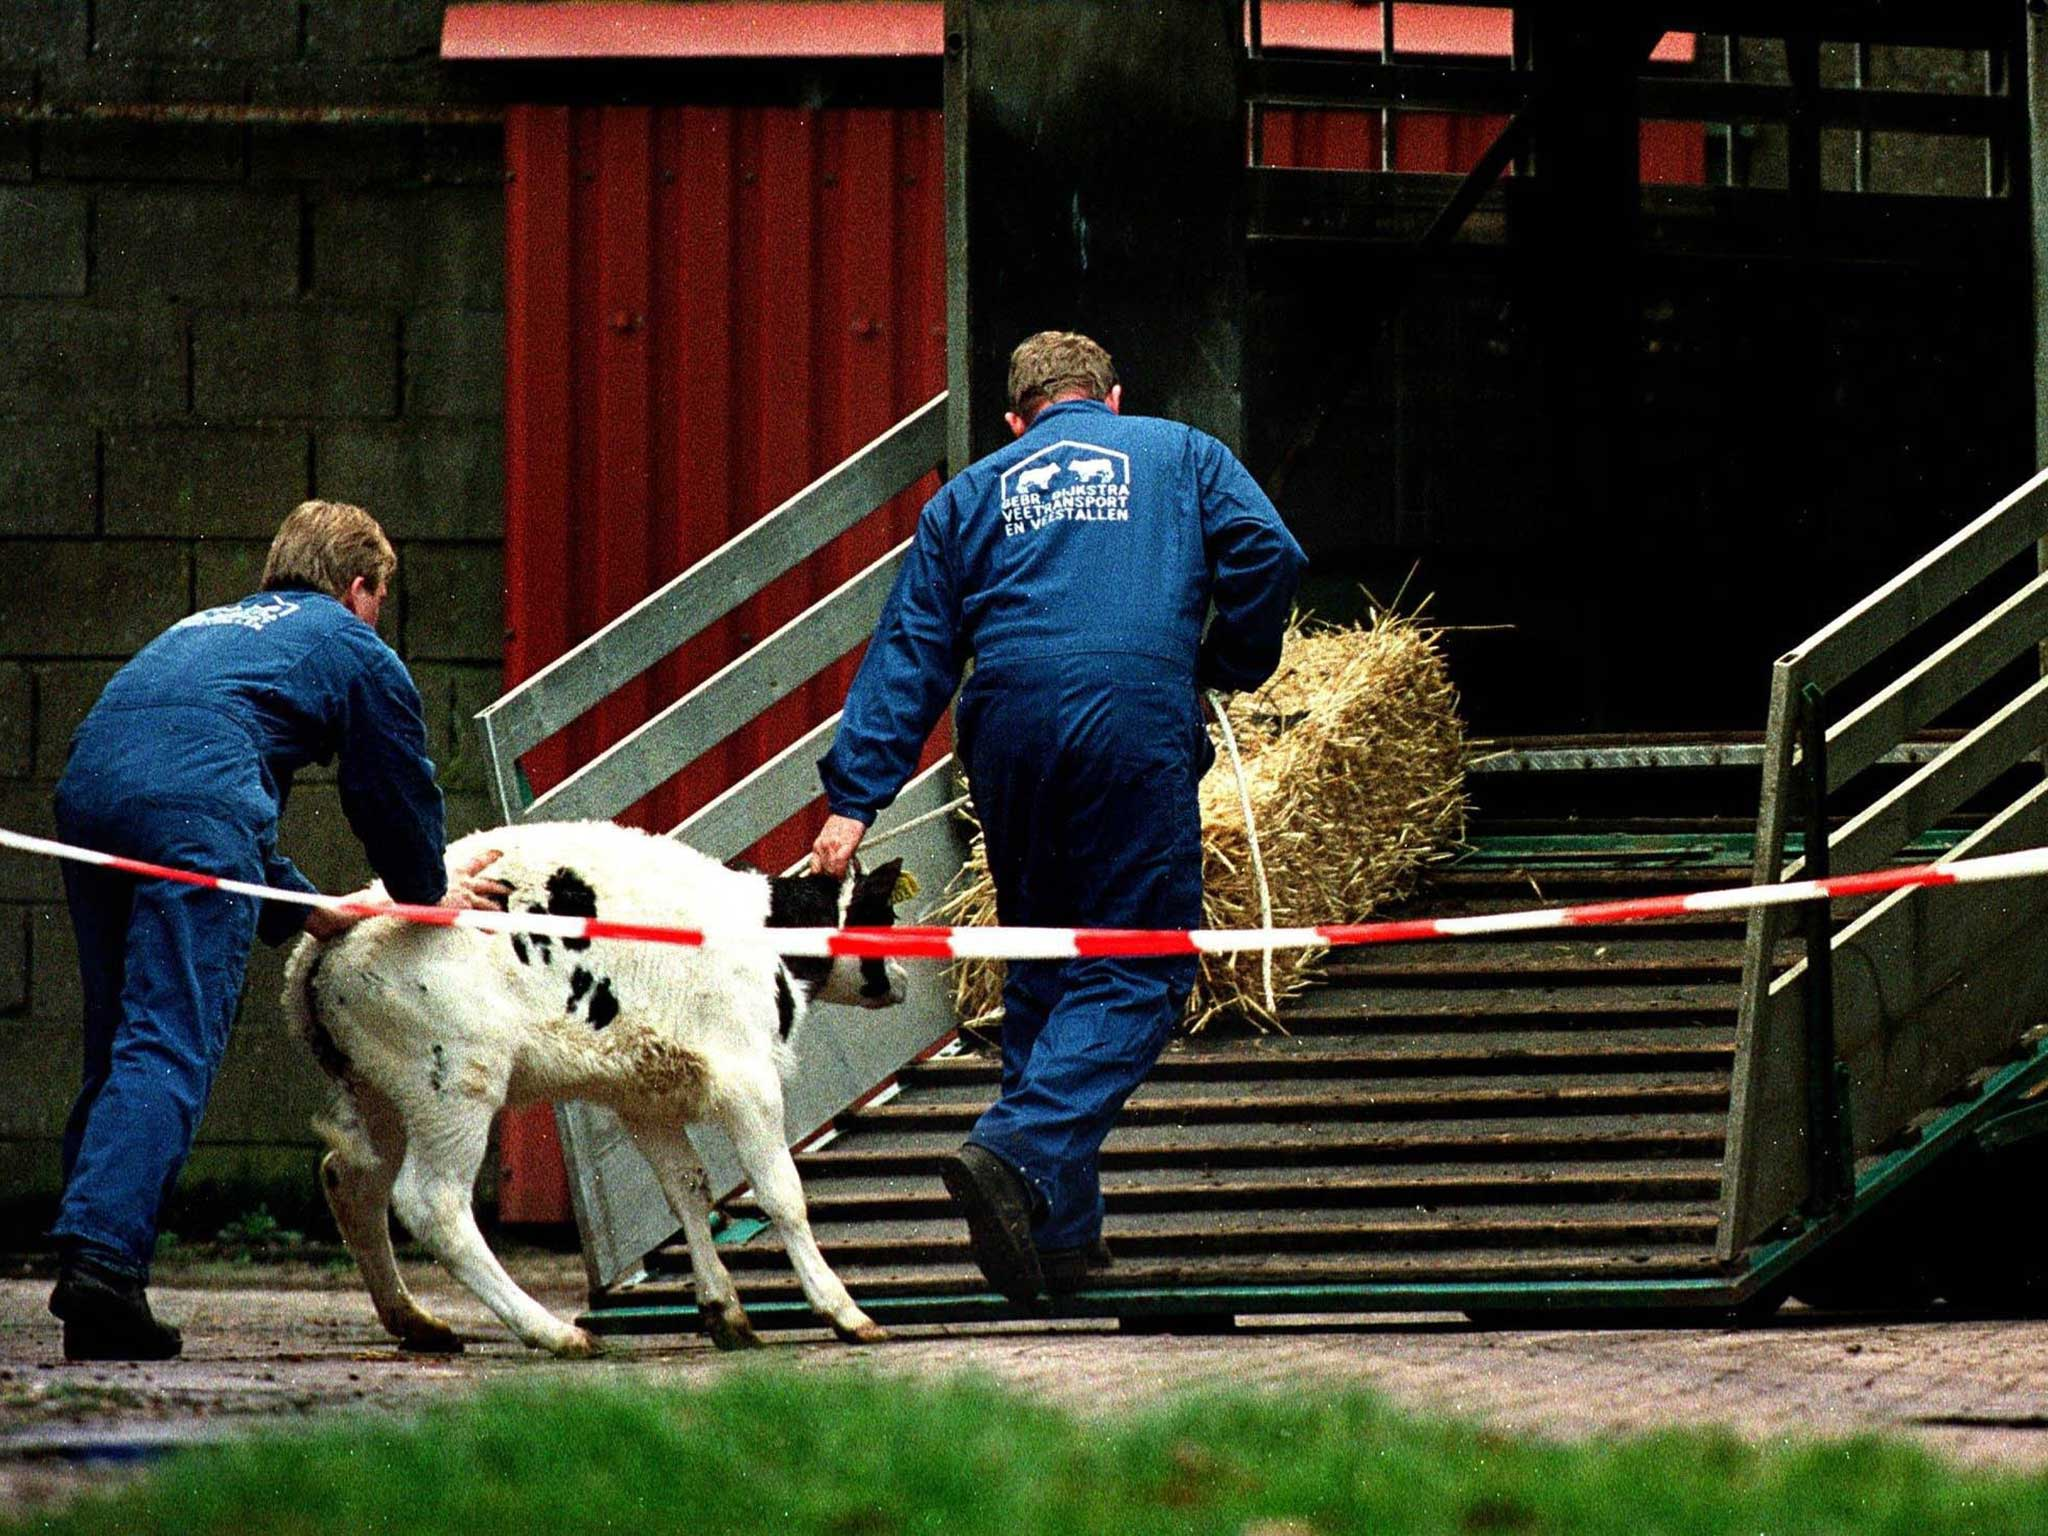 Mad cow disease in the UK: What is BSE and what are the symptoms?